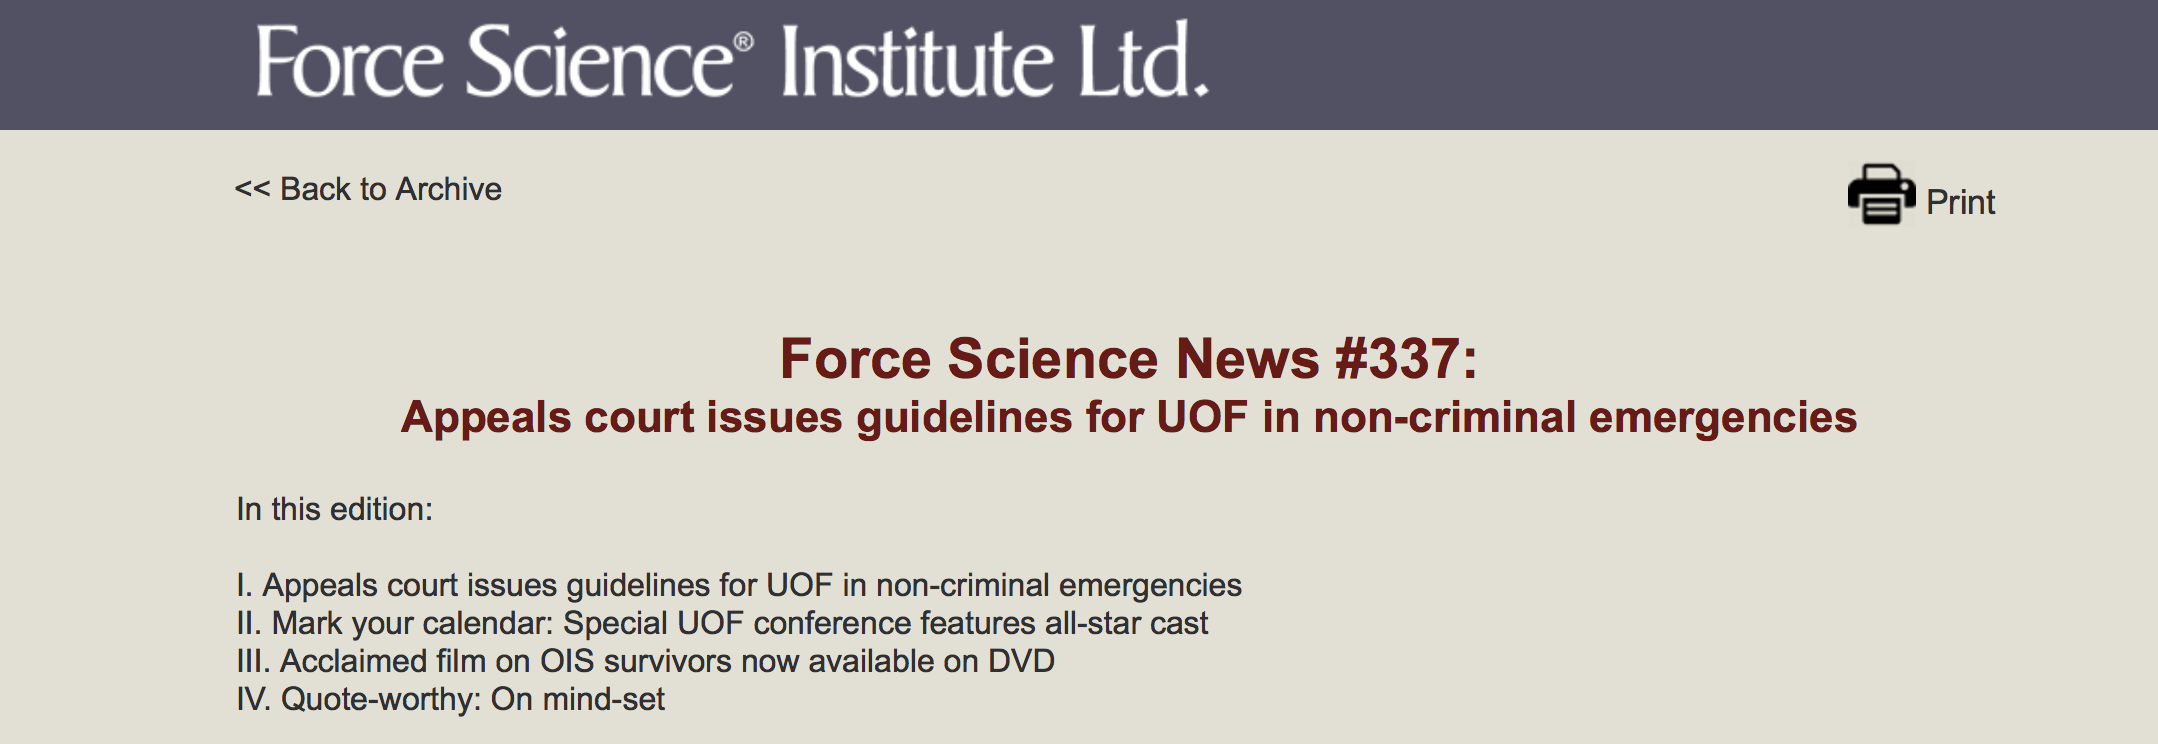 Acclaimed Film on OIS Survivors Now Available on DVD   Force Science